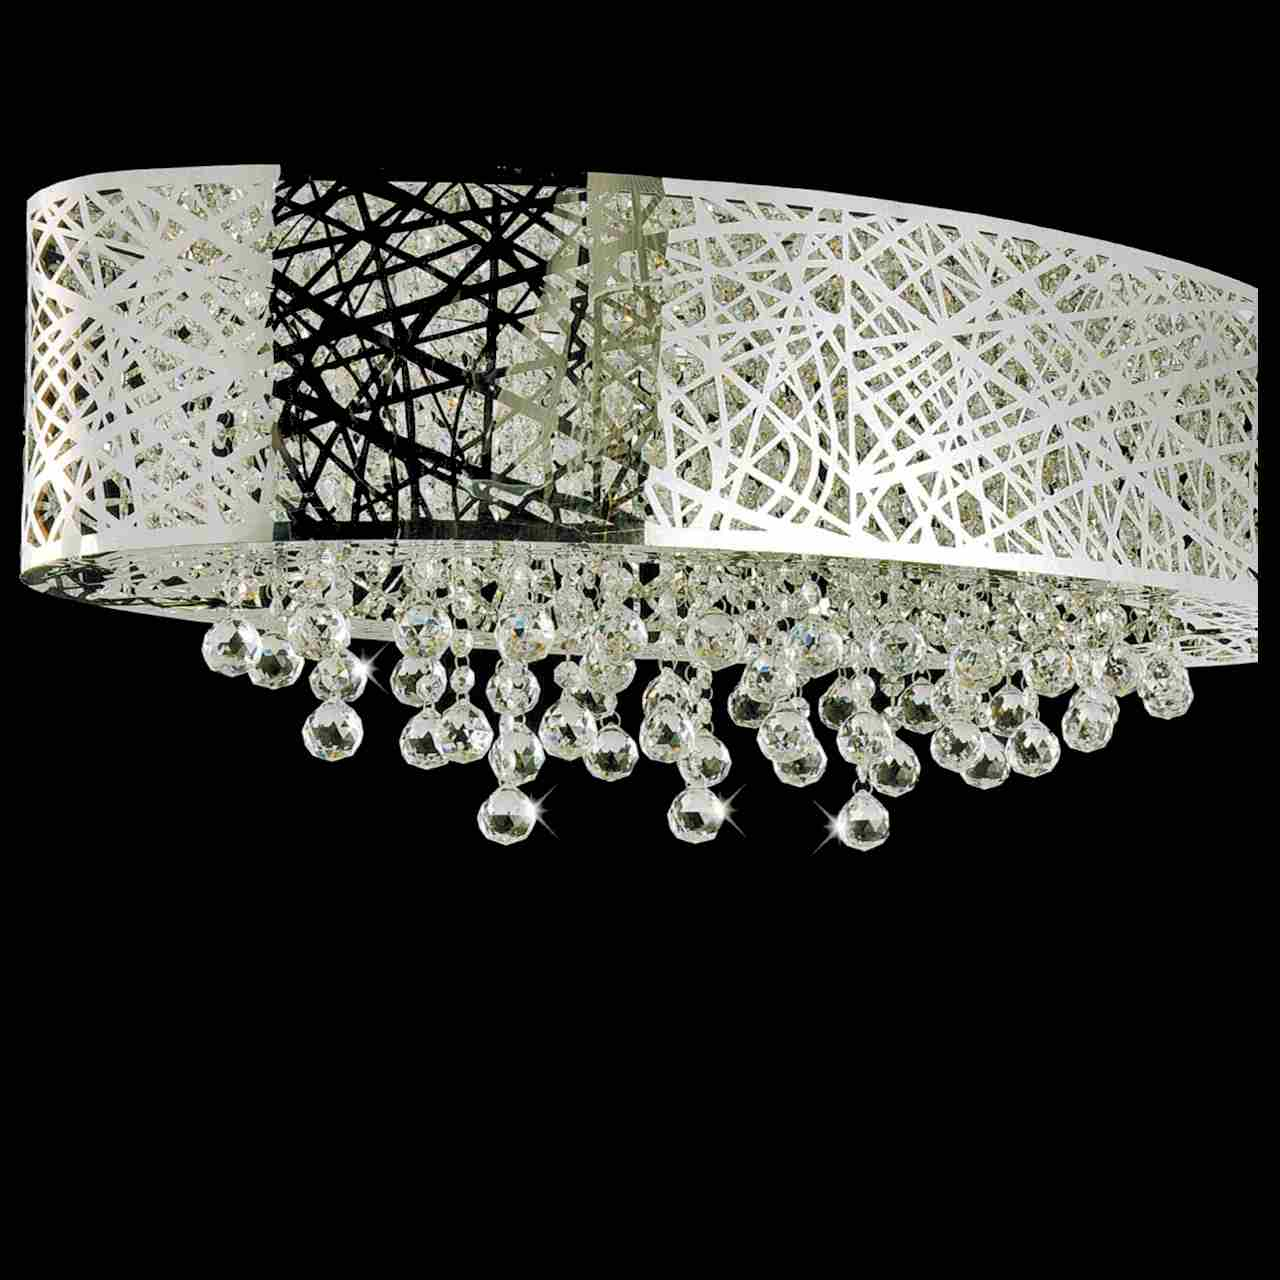 Brizzo lighting stores 32 web modern laser cut shade crystal oval picture of 32 web modern laser cut shade crystal oval flush mount chandelier stainless steel arubaitofo Choice Image